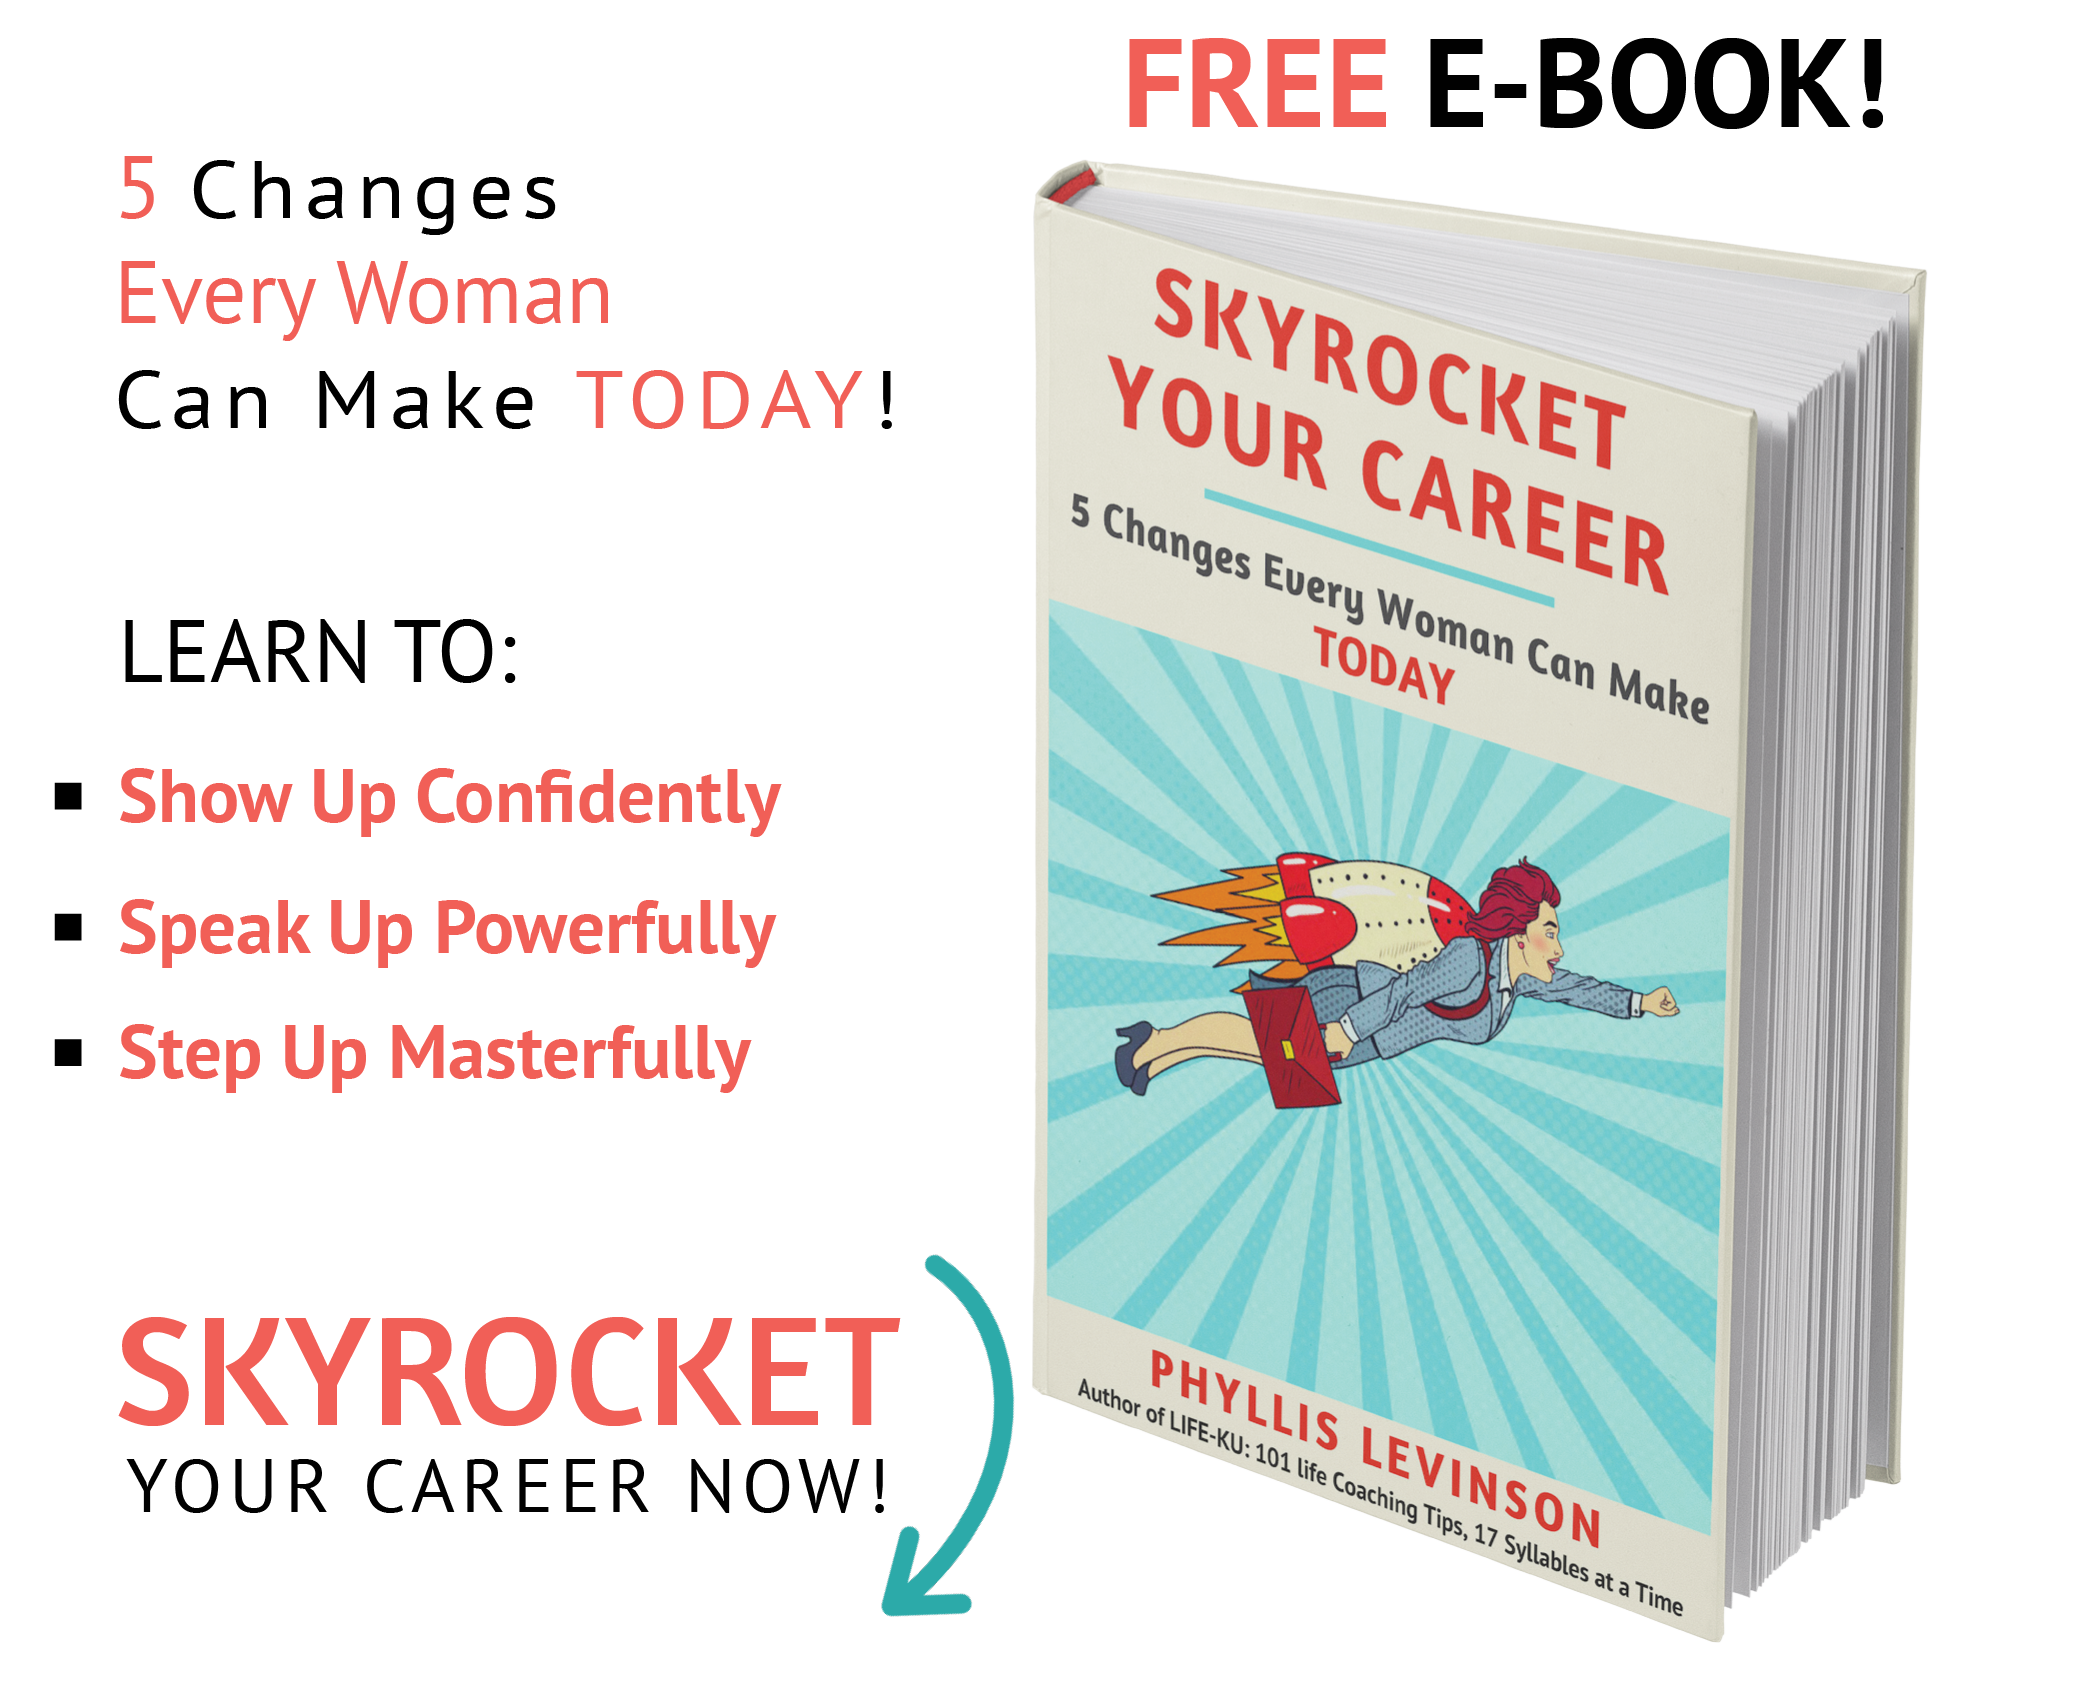 """FREE E-BOOK """"SKYROCKET YOUR CAREER: 5 Changes Every Woman Can Make TODAY!"""" by Phyllis Levinson"""